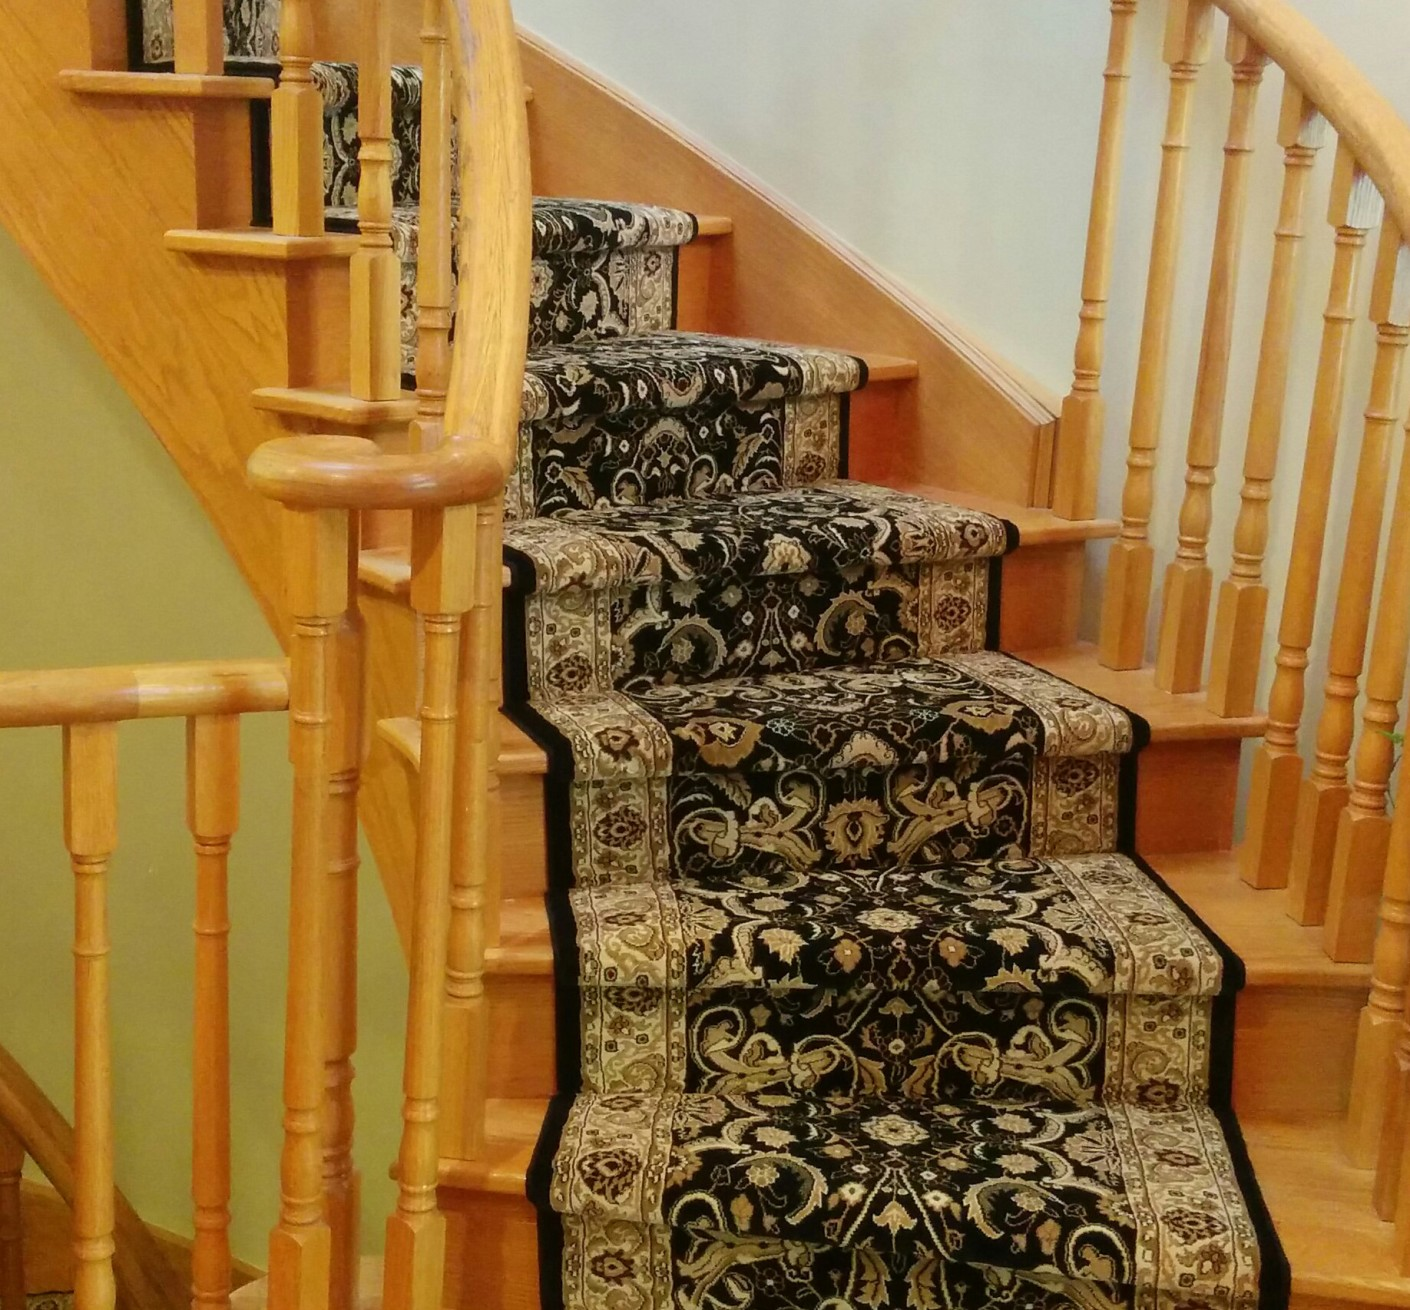 black carpet runner on stairs